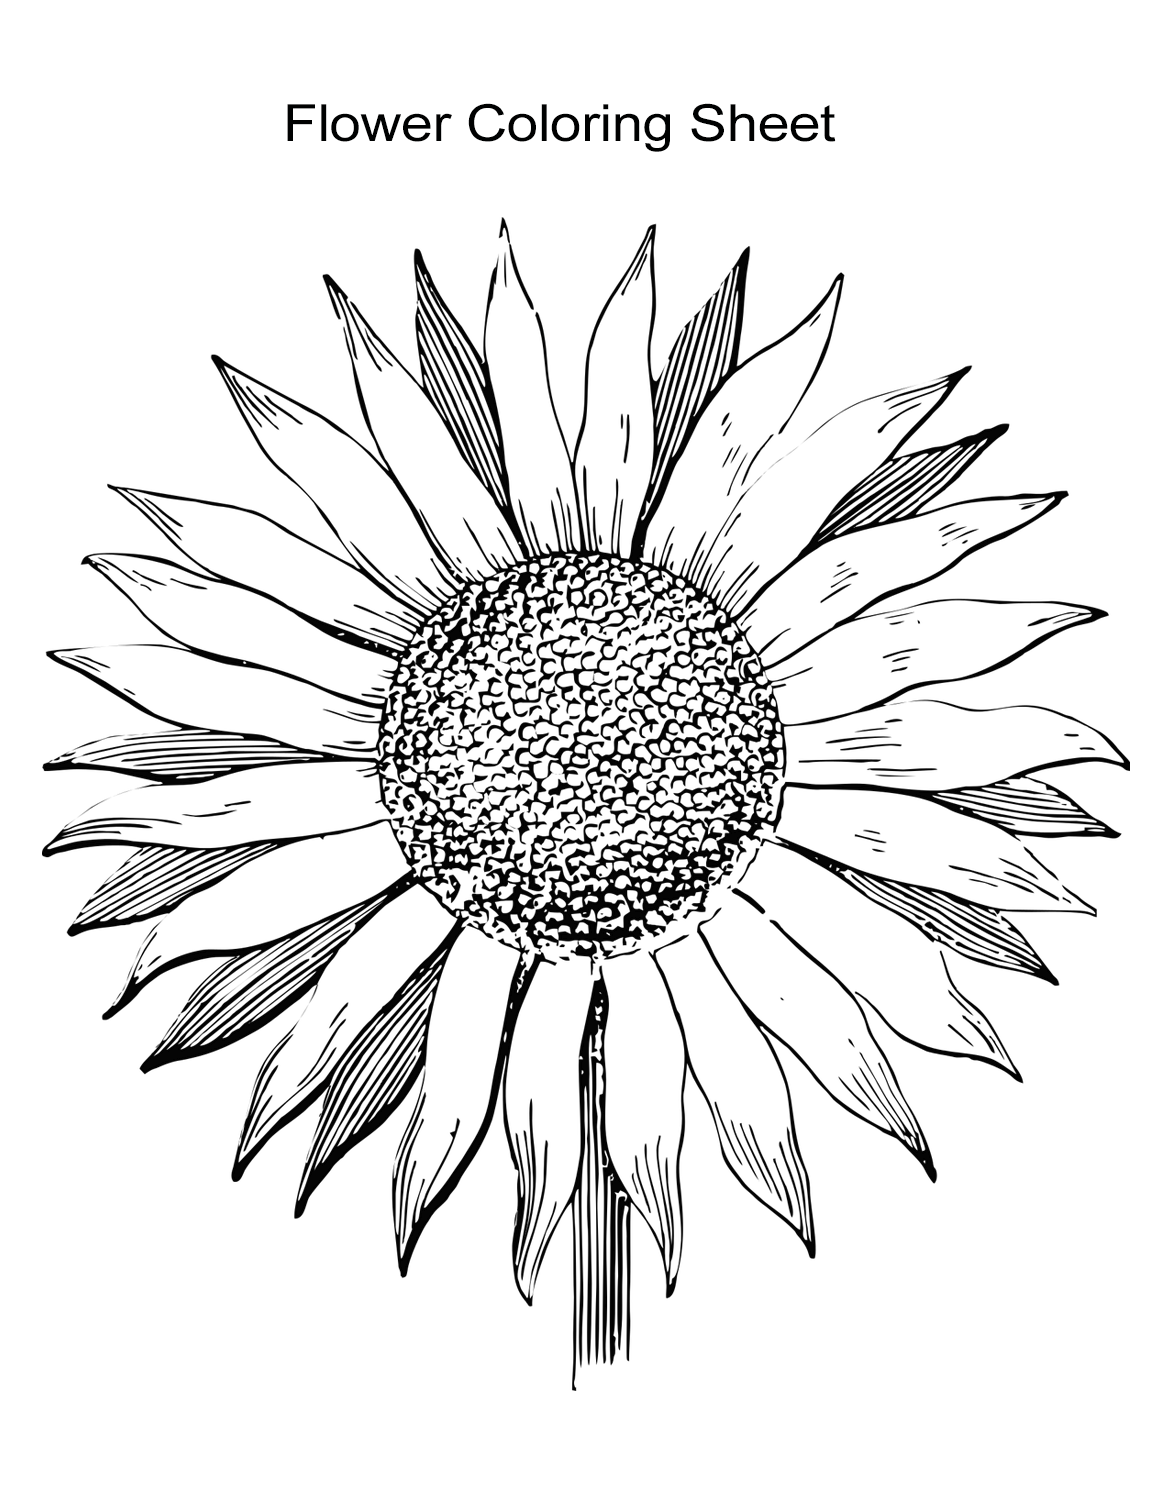 coloring pages for girls flowers flower coloring pics flower coloring page pages girls coloring for flowers